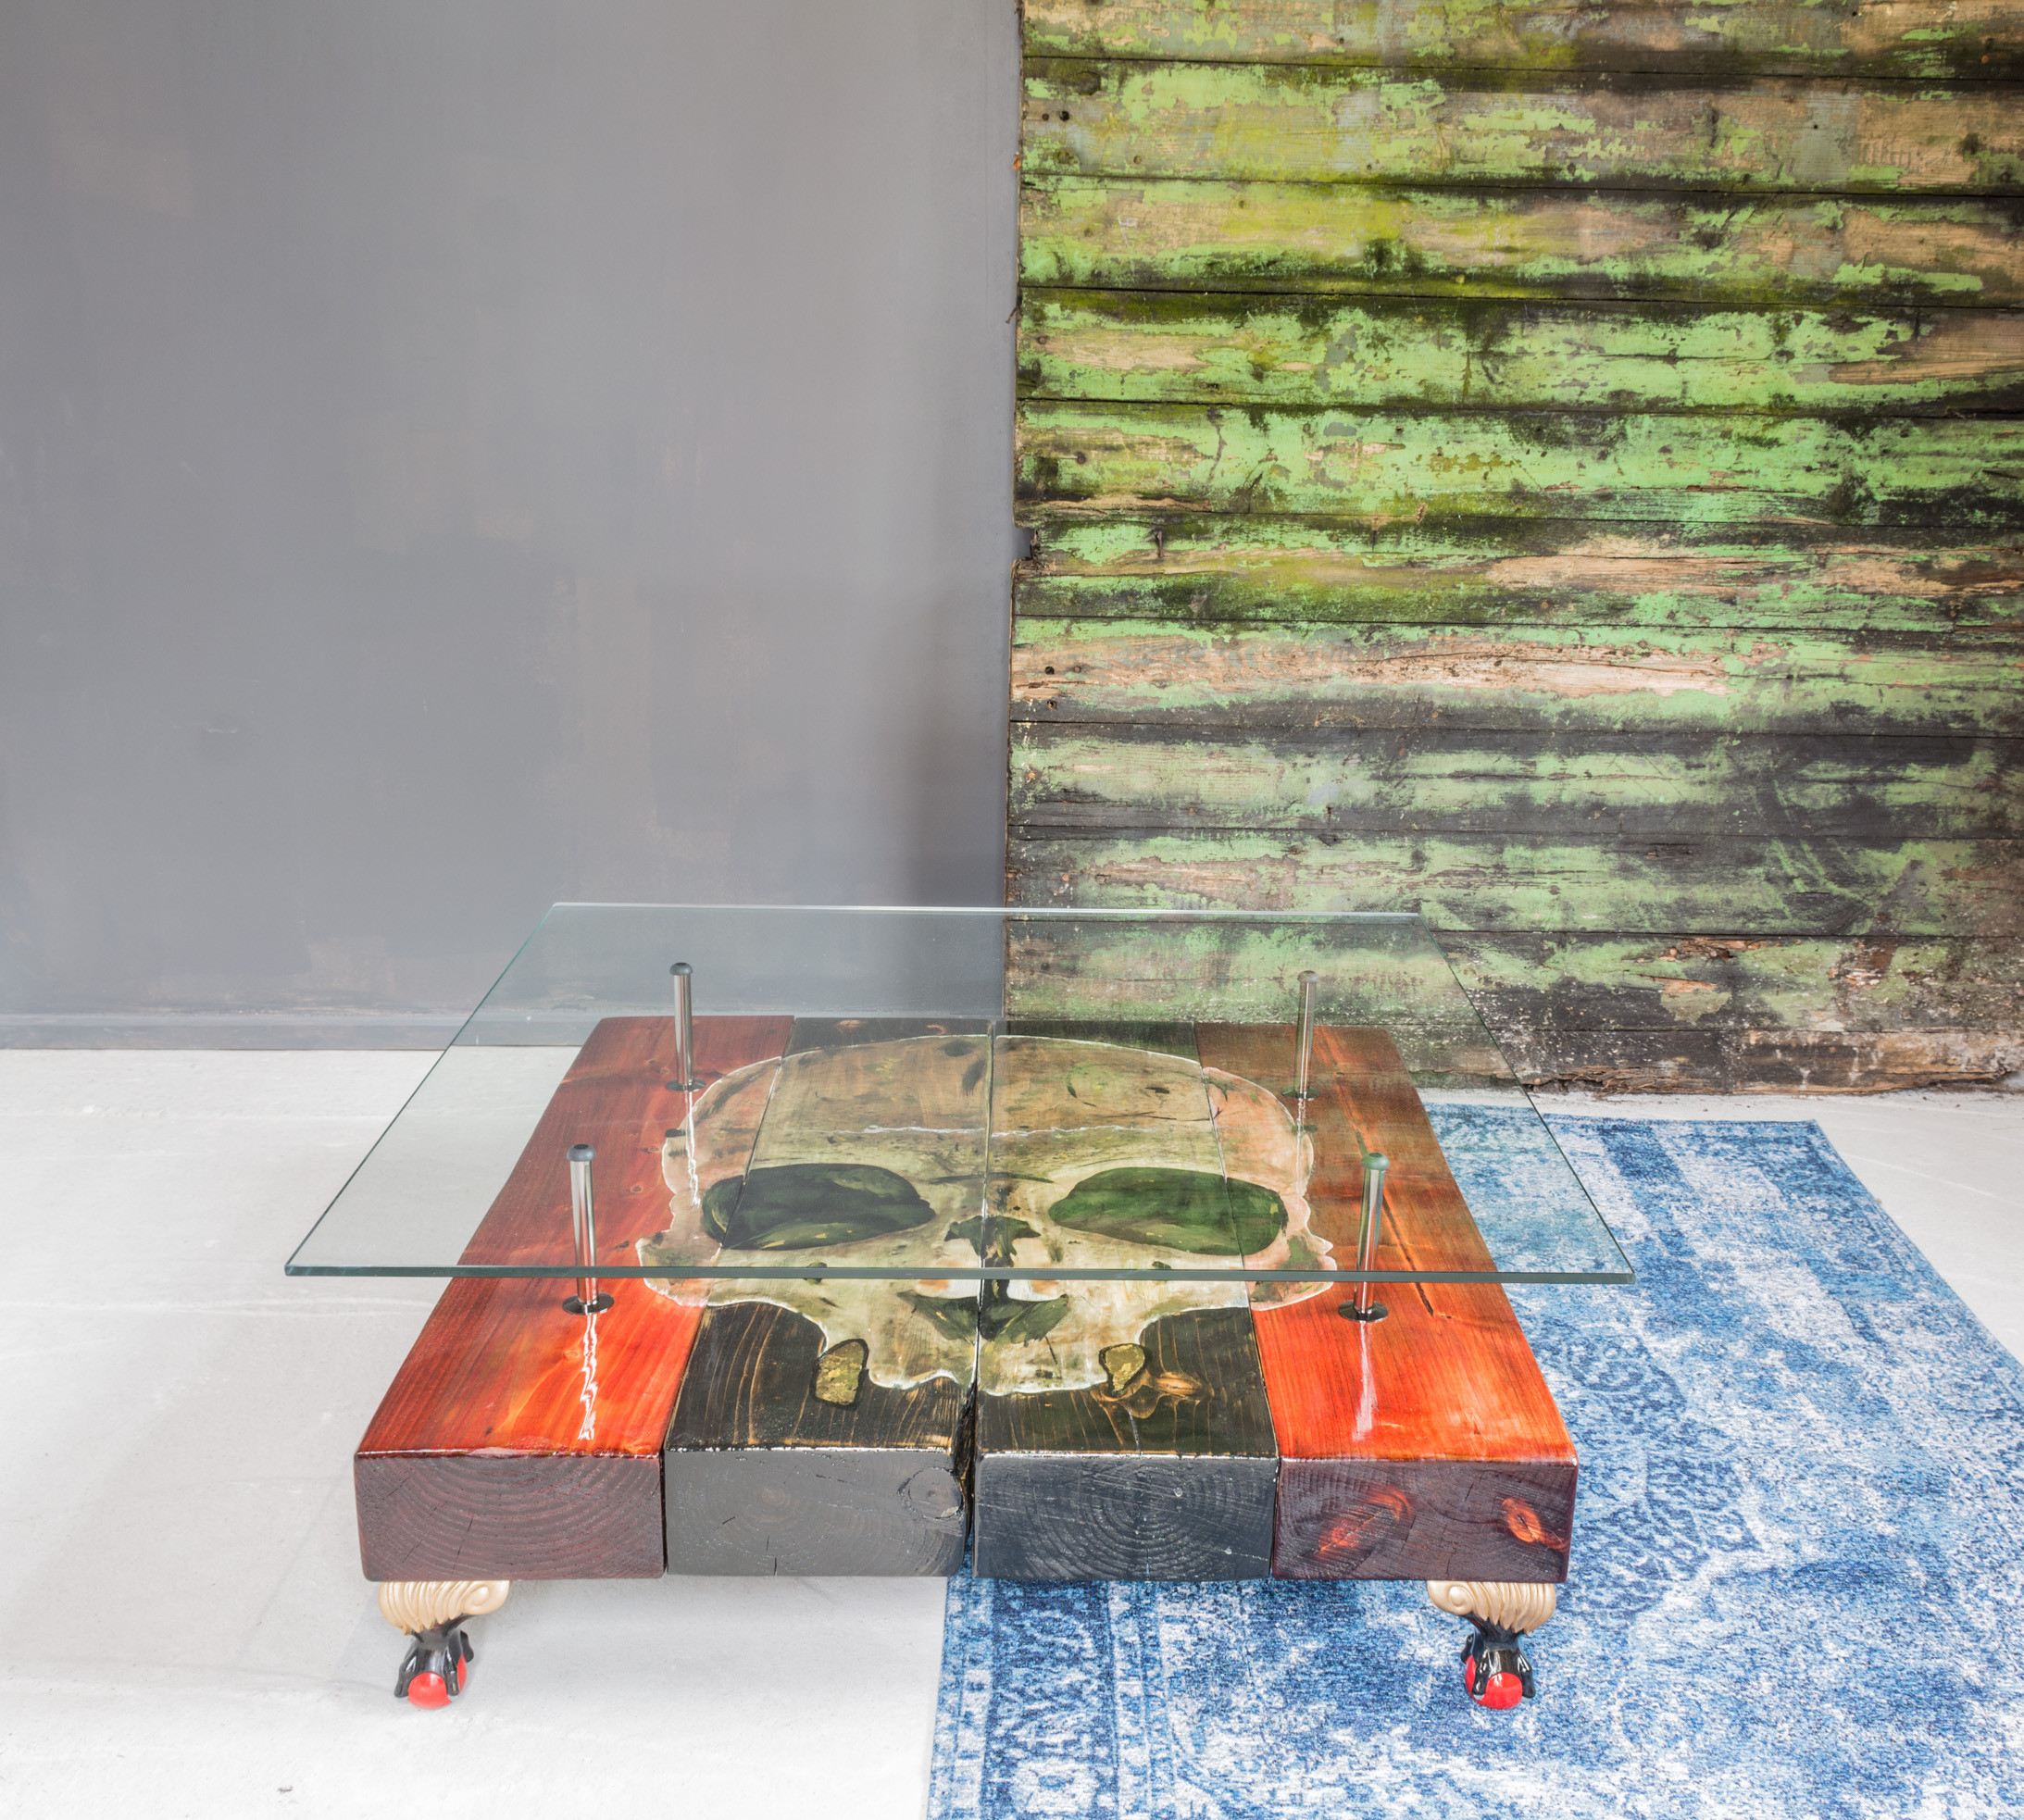 The joker playing card table cappa e spada designs liverpool gothic skull coffee table geotapseo Gallery